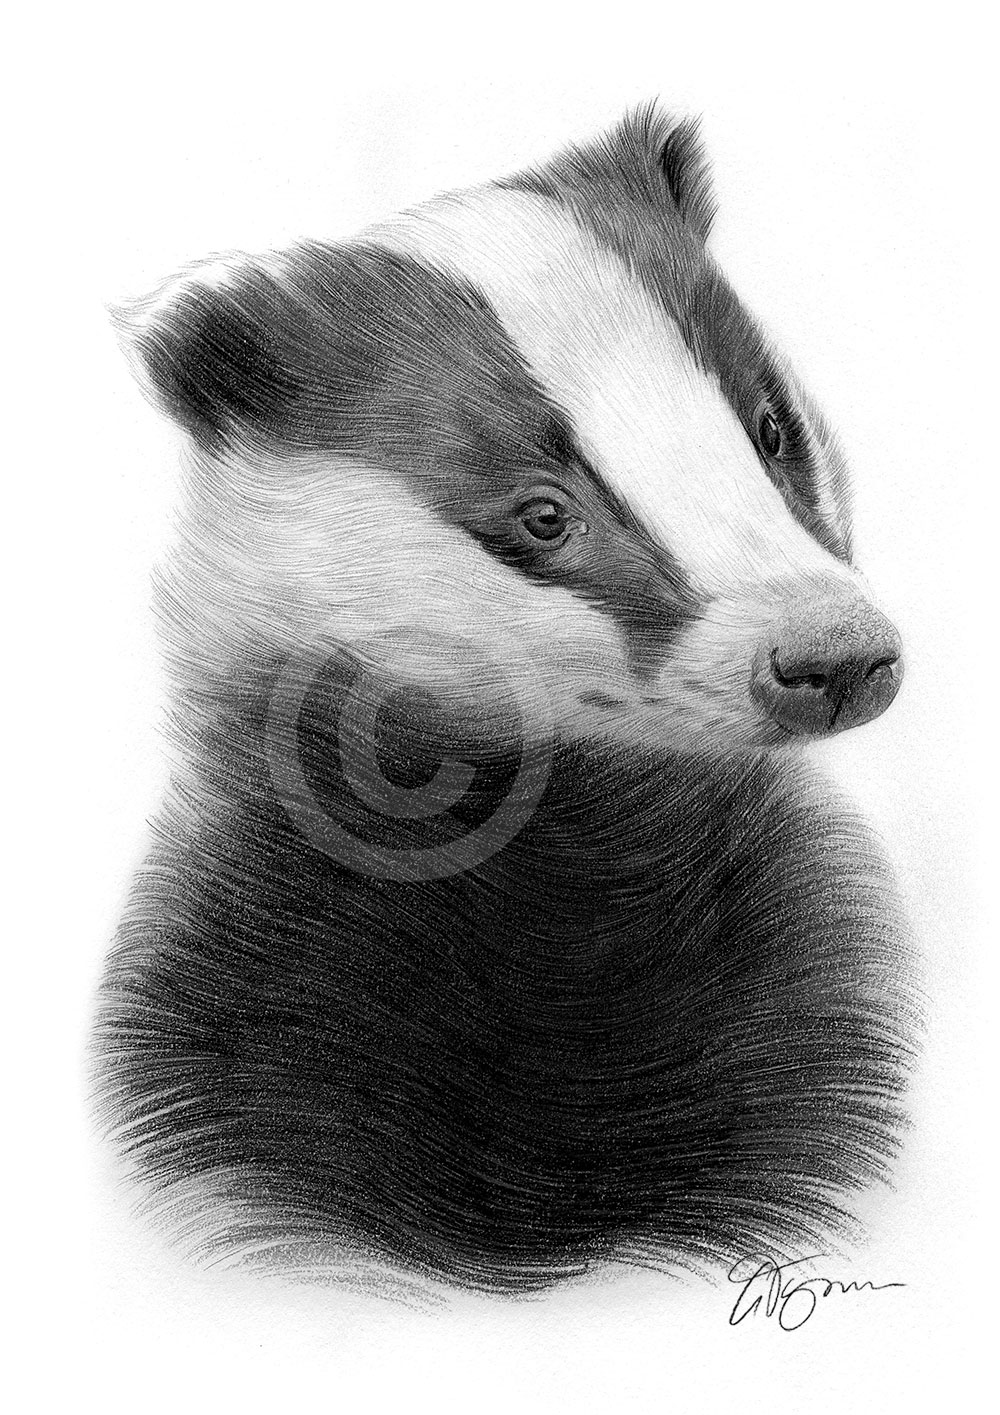 Uncategorized Badger Drawing pencil drawing of a young badger by artist gary tymon tymon